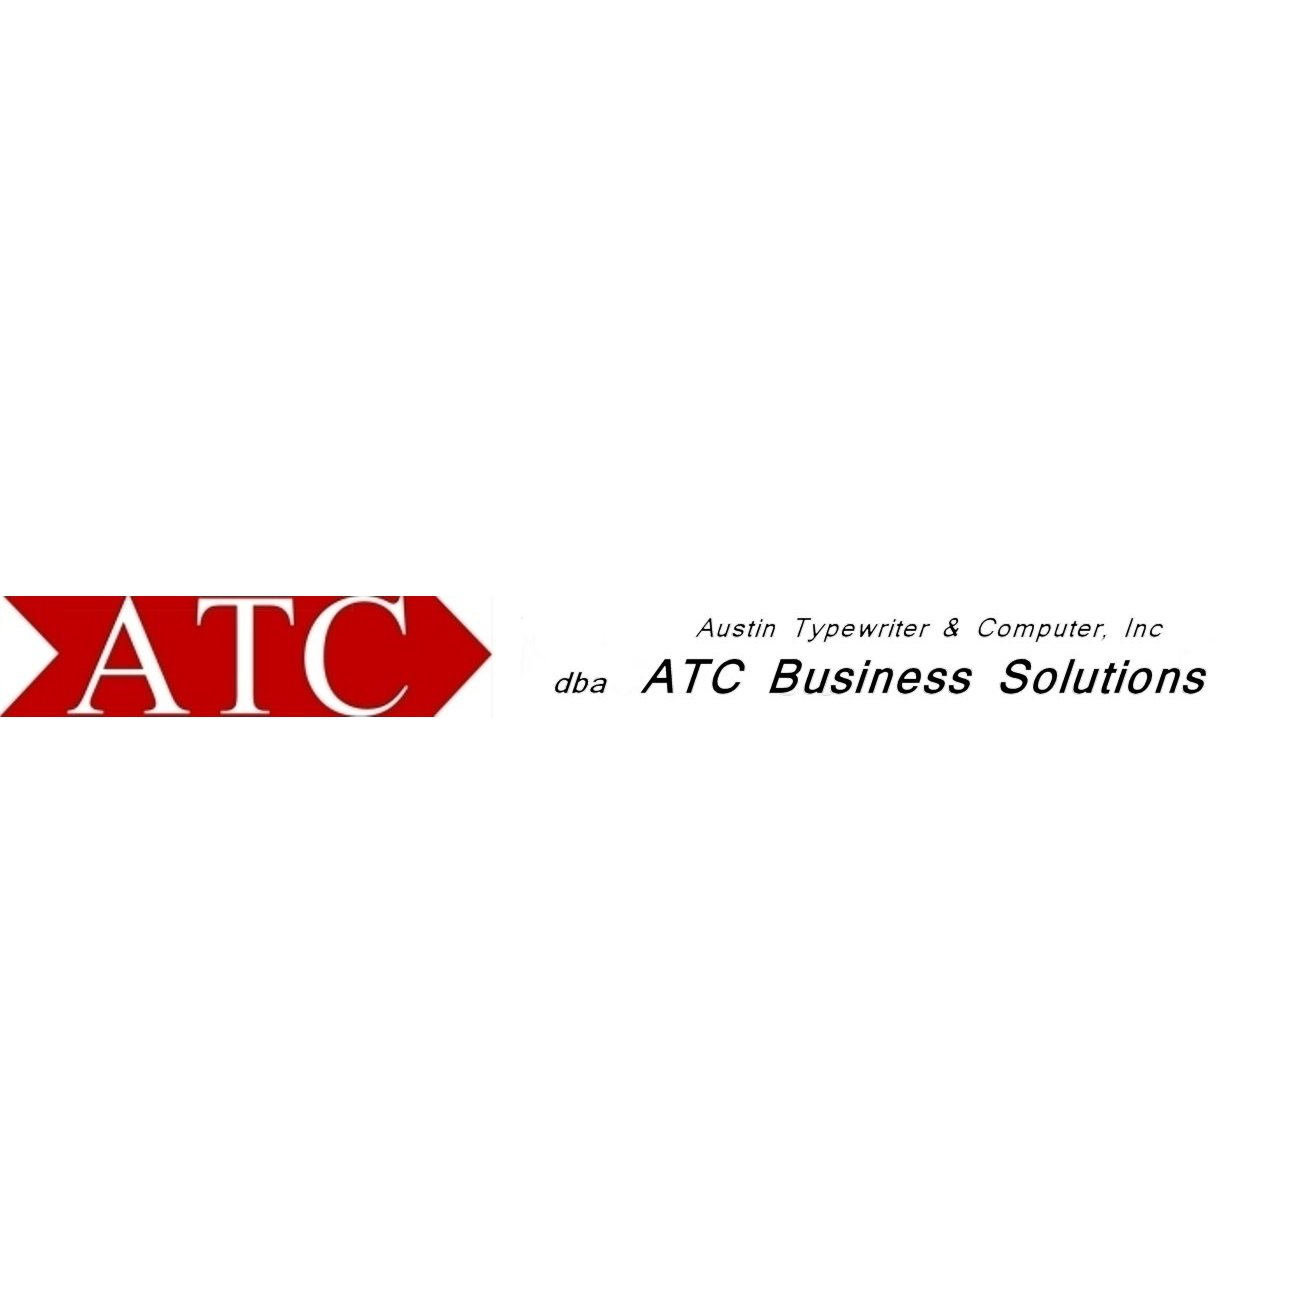 ATC Business Solutions